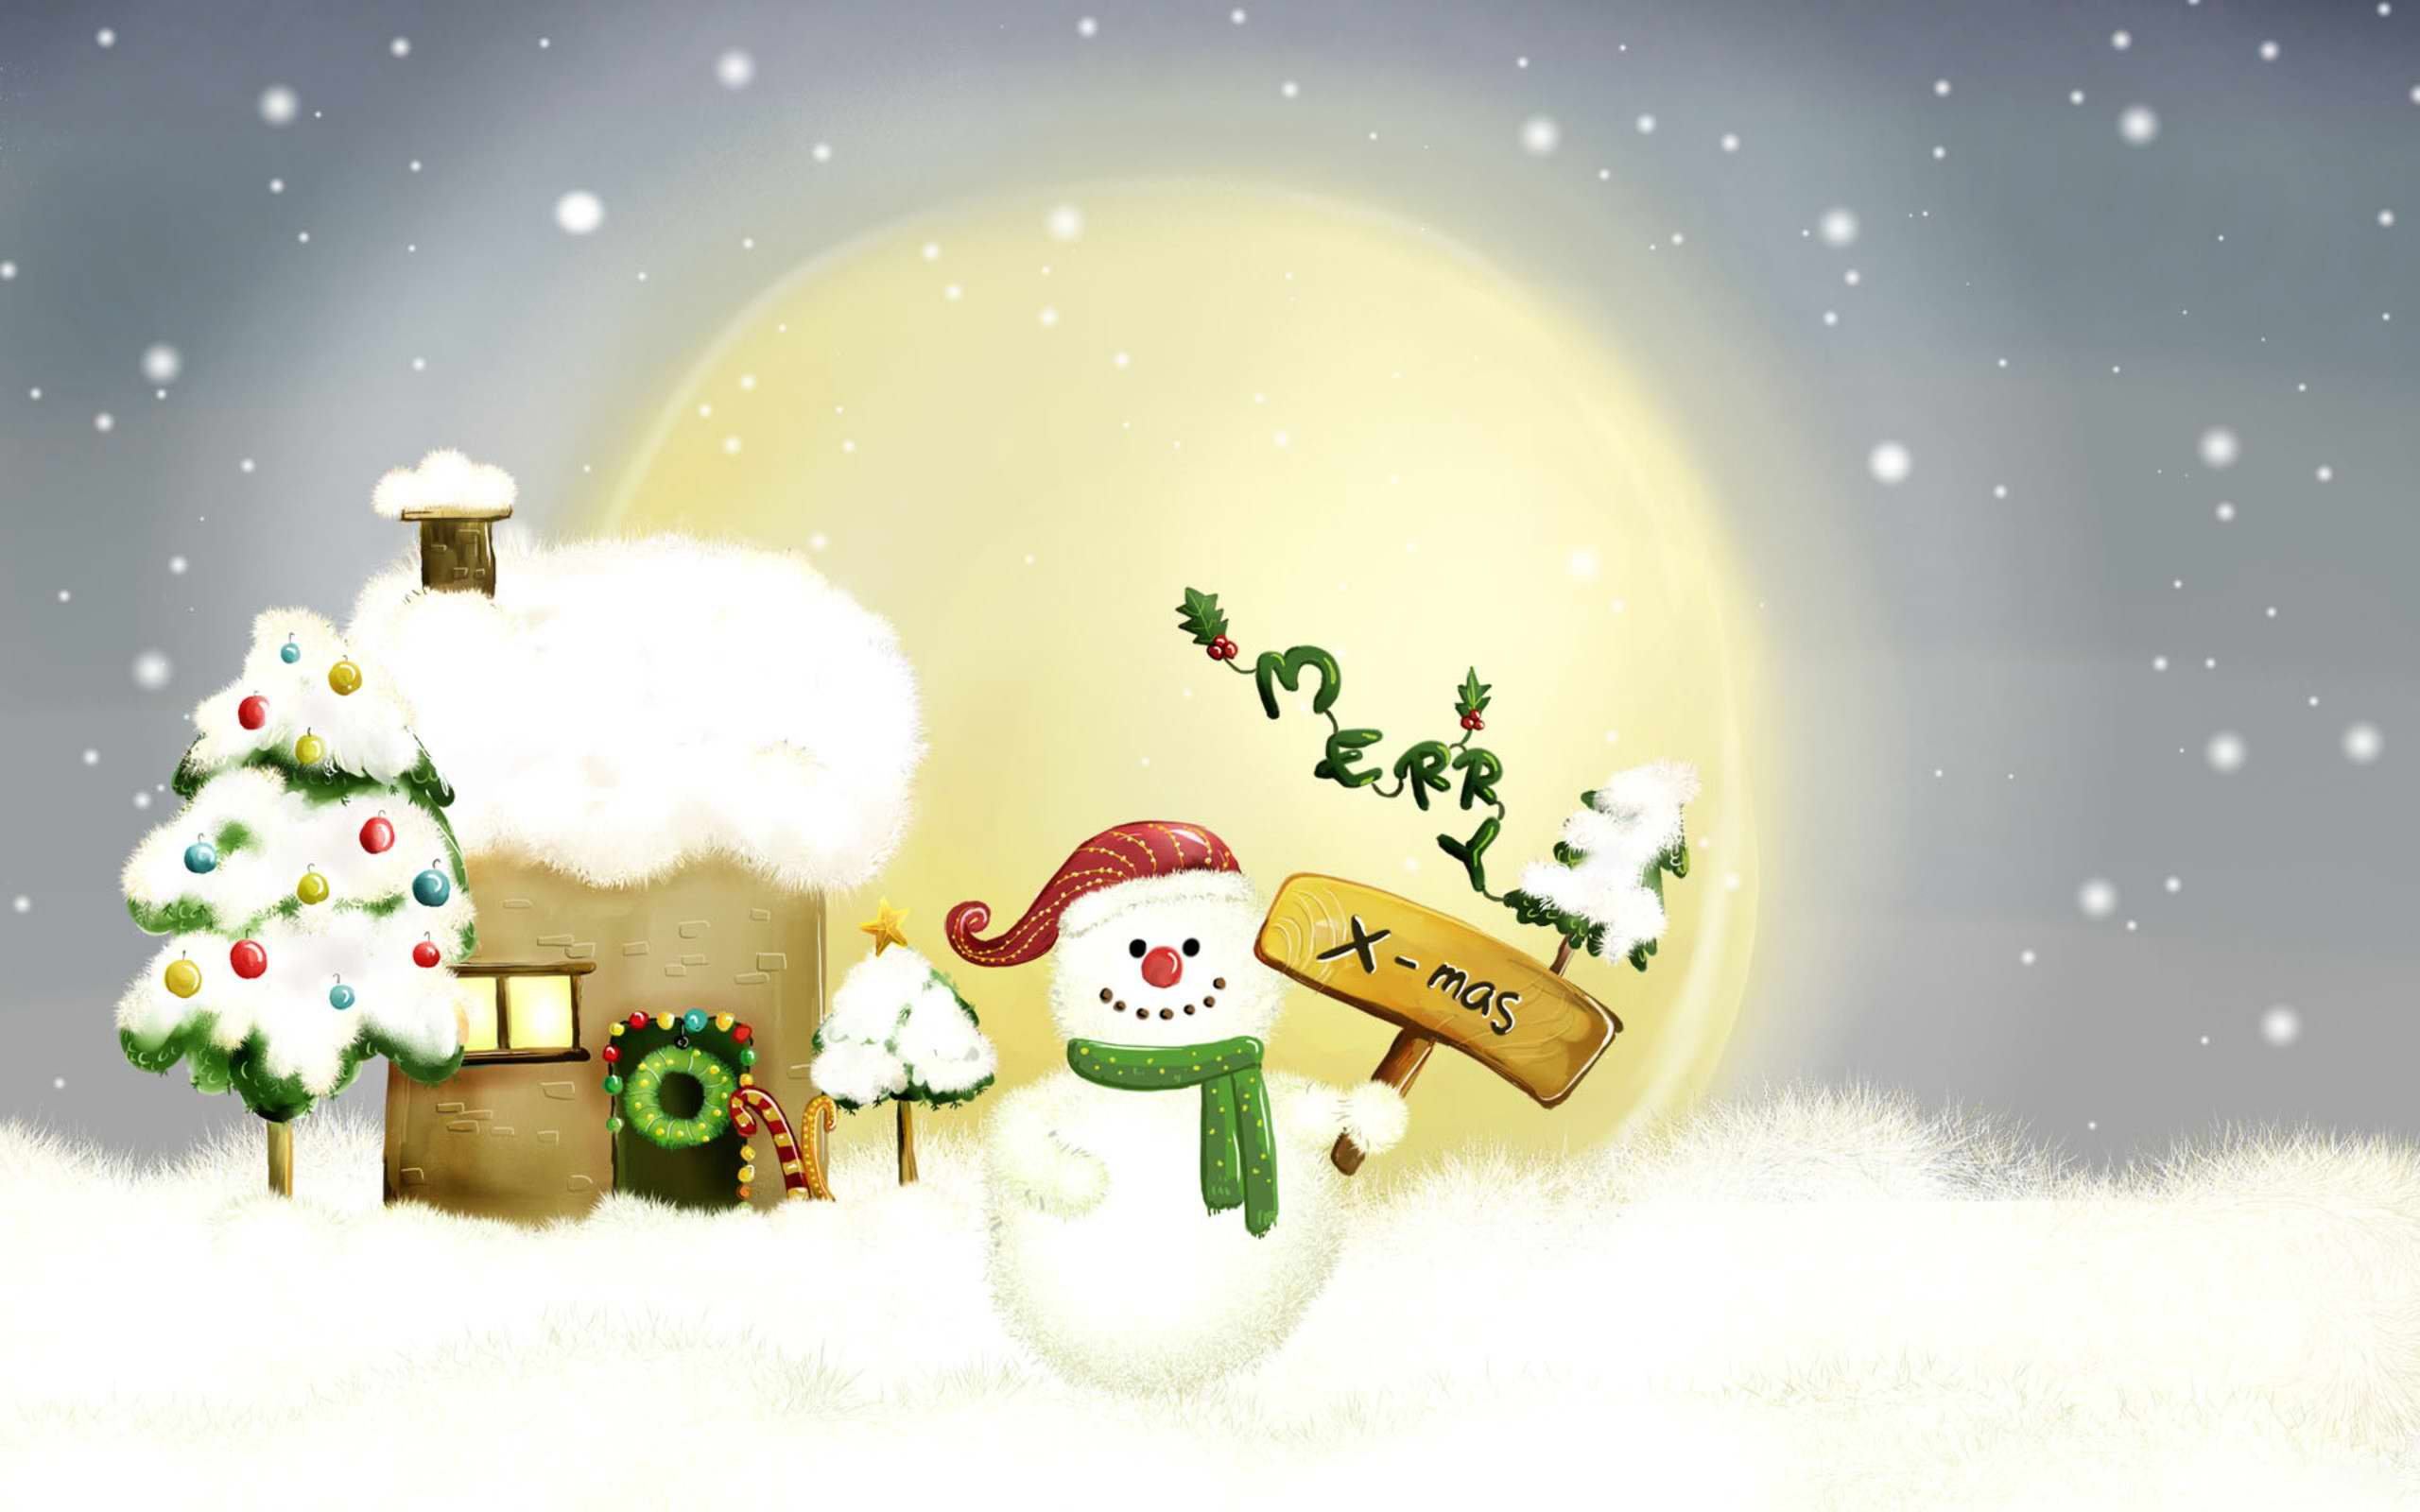 merry christmas wallpaper winter - photo #17